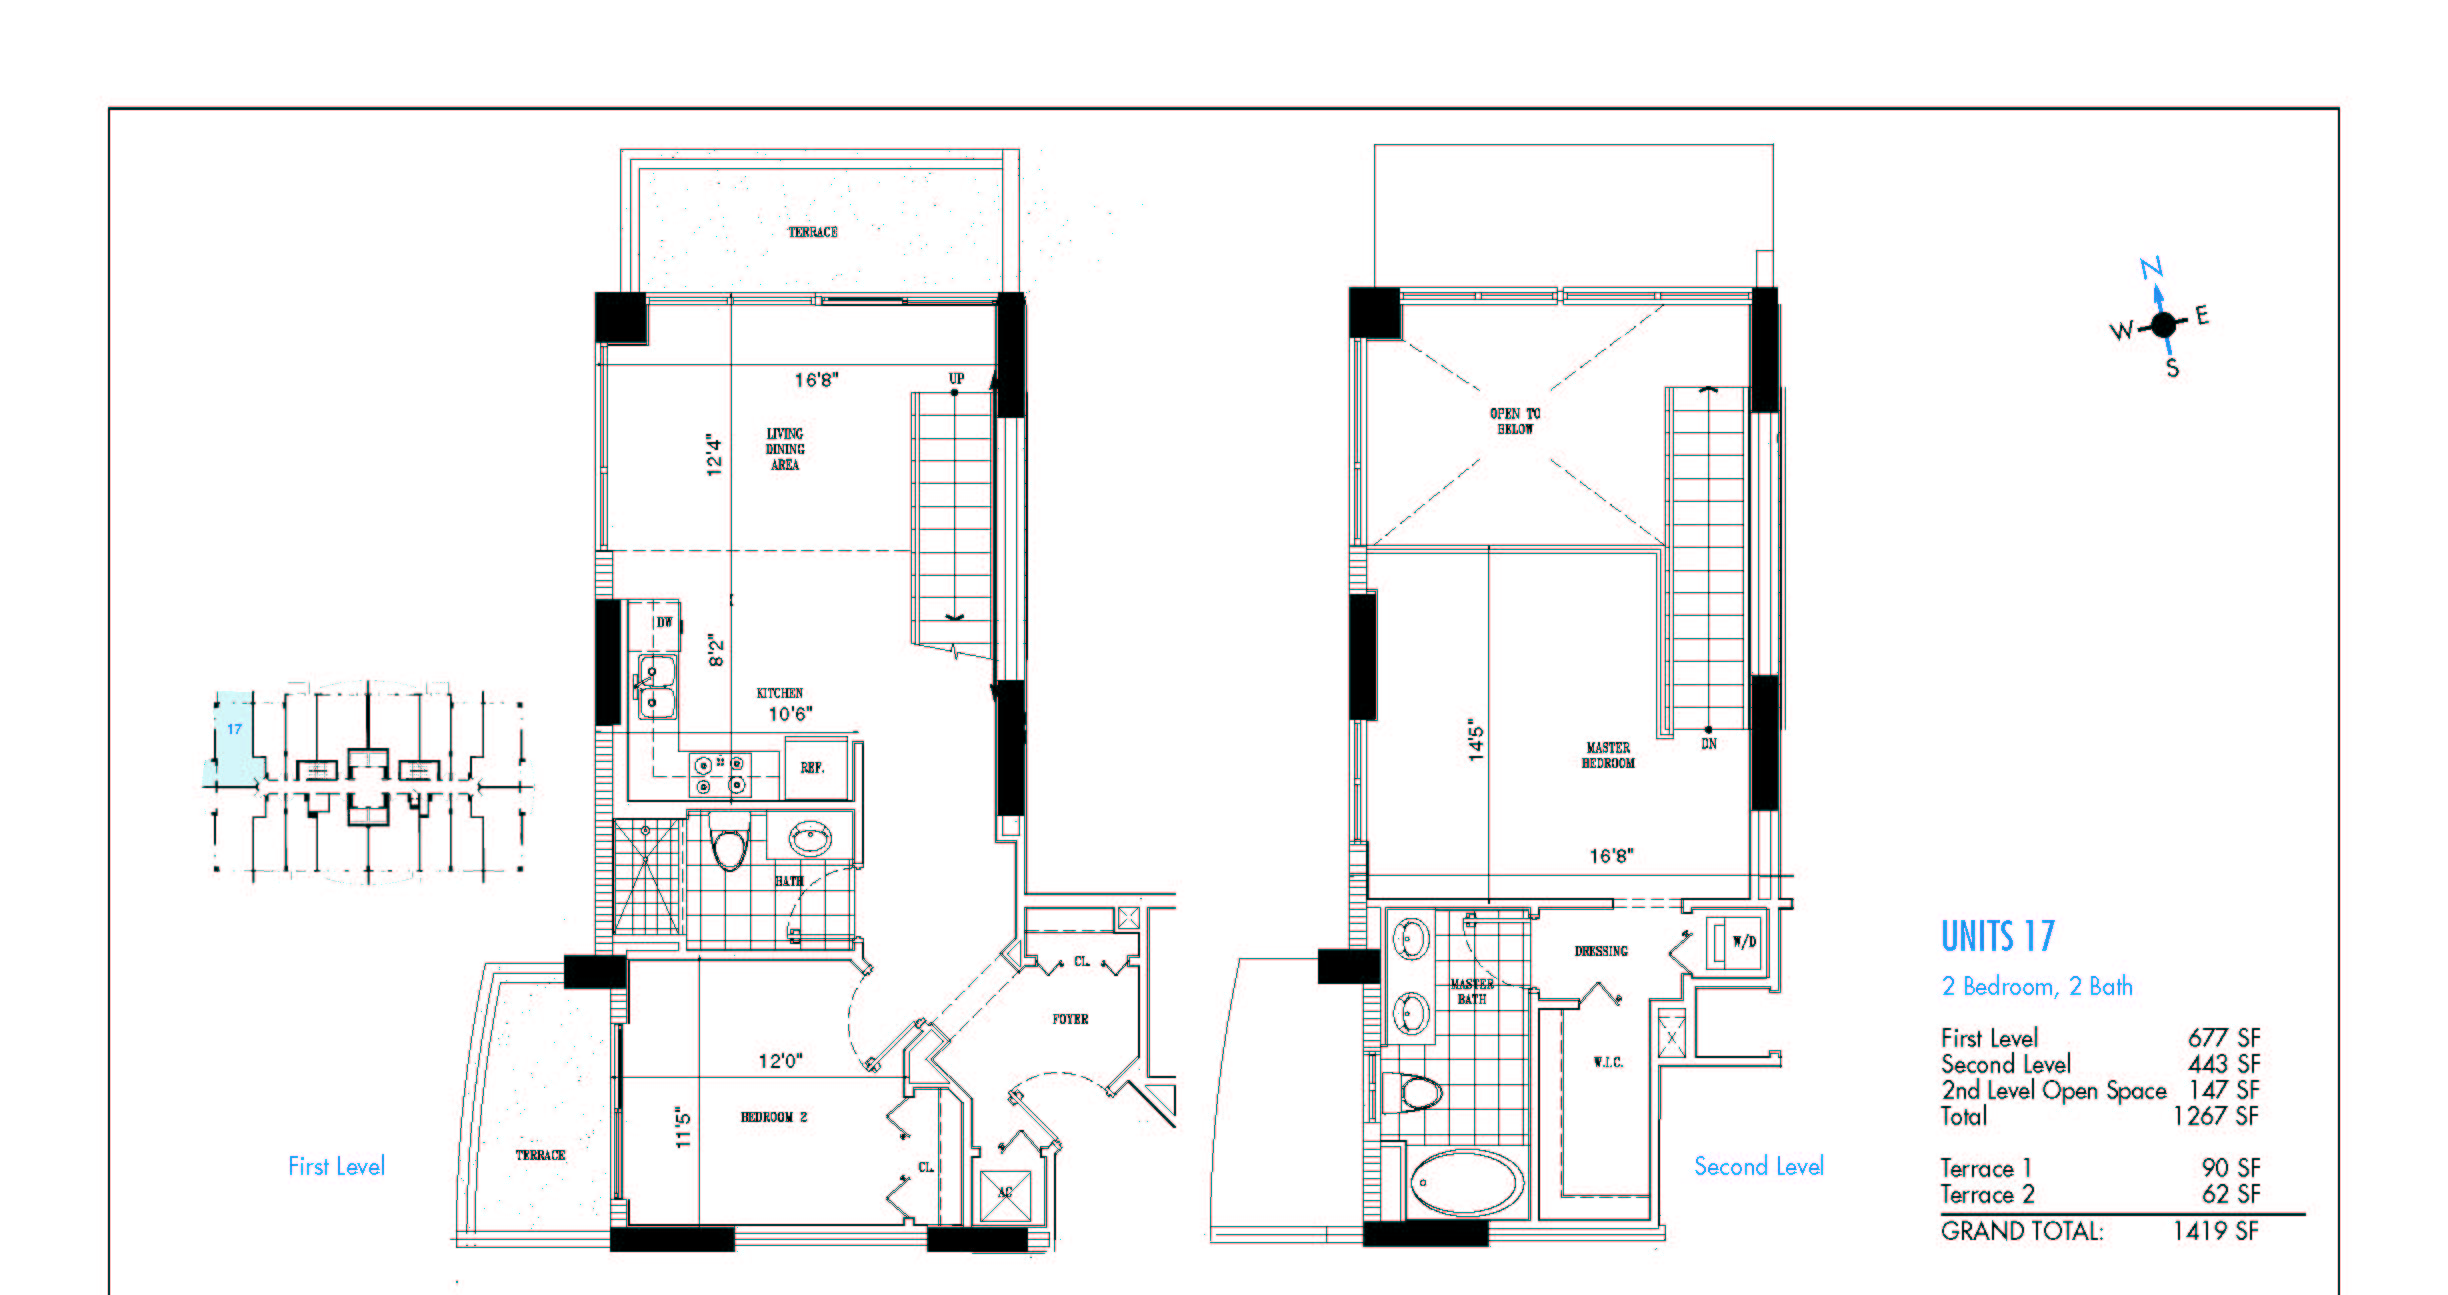 Floors Plans also Floors Plans in addition High Rise Apartment Floor Plans also Plan Ground Floor as well Penthouse Apartment Floor Plans. on 55 east erie